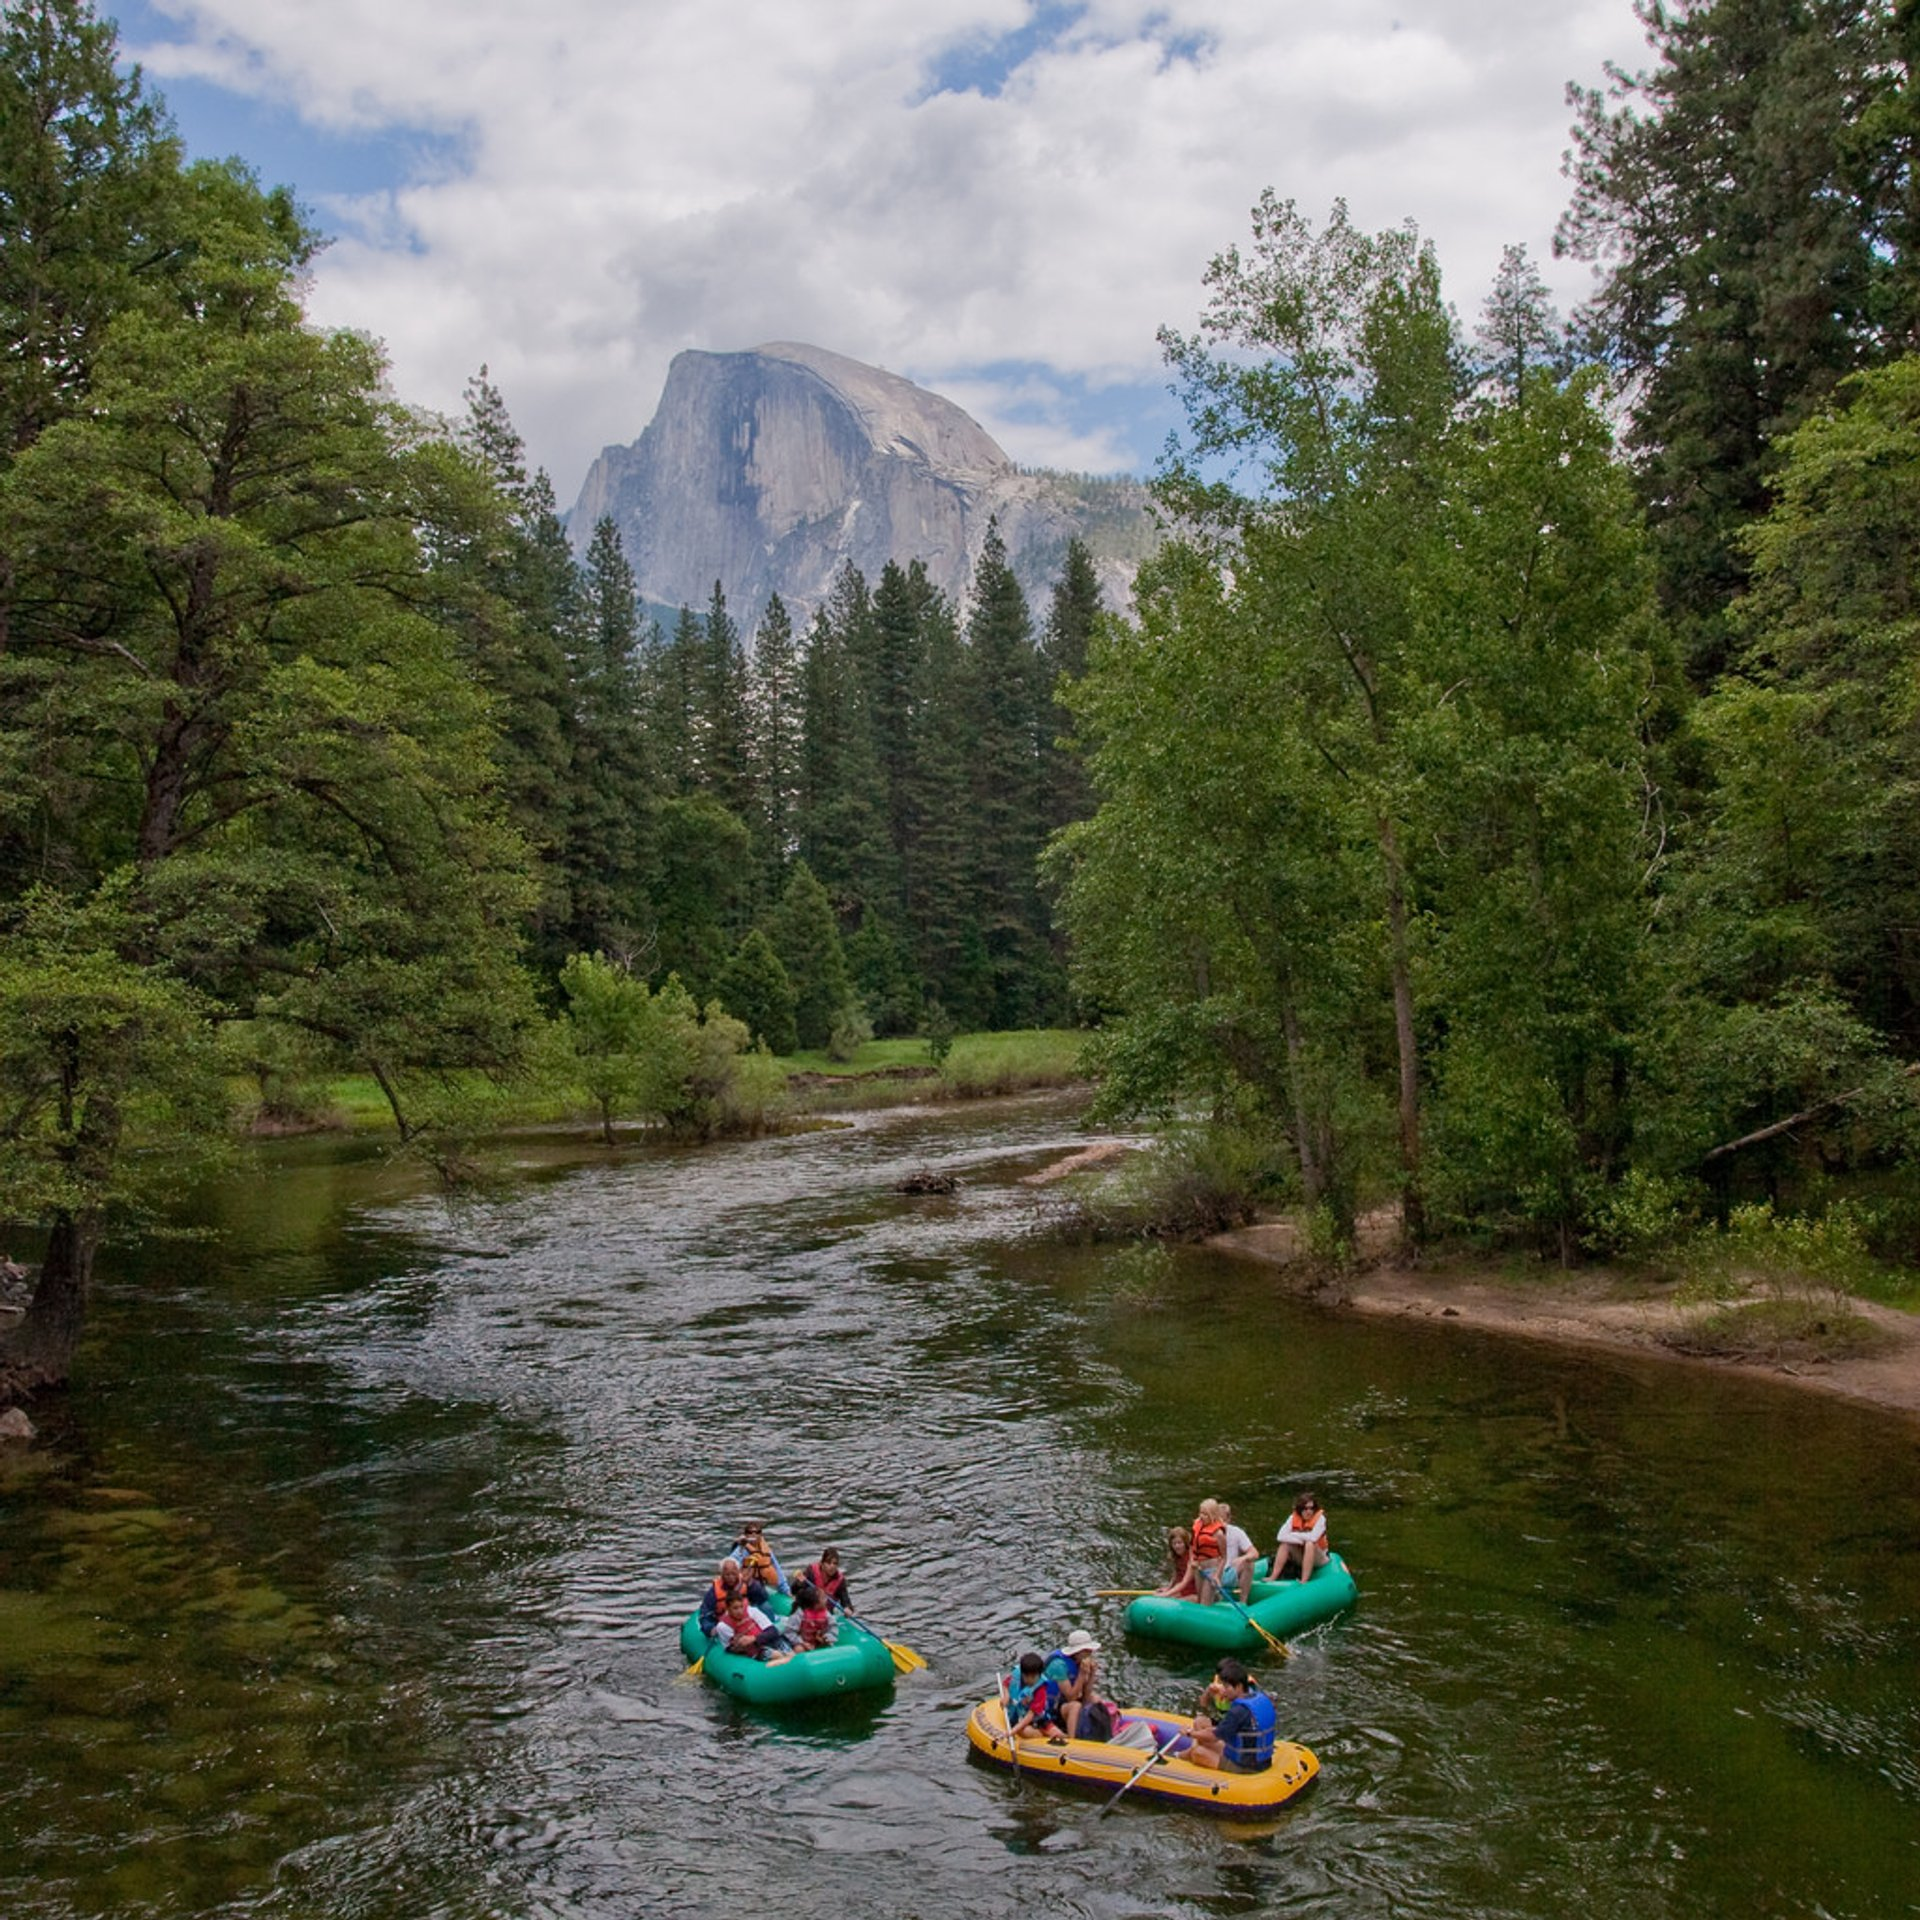 Rafting Along the Merced River in Yosemite - Best Season